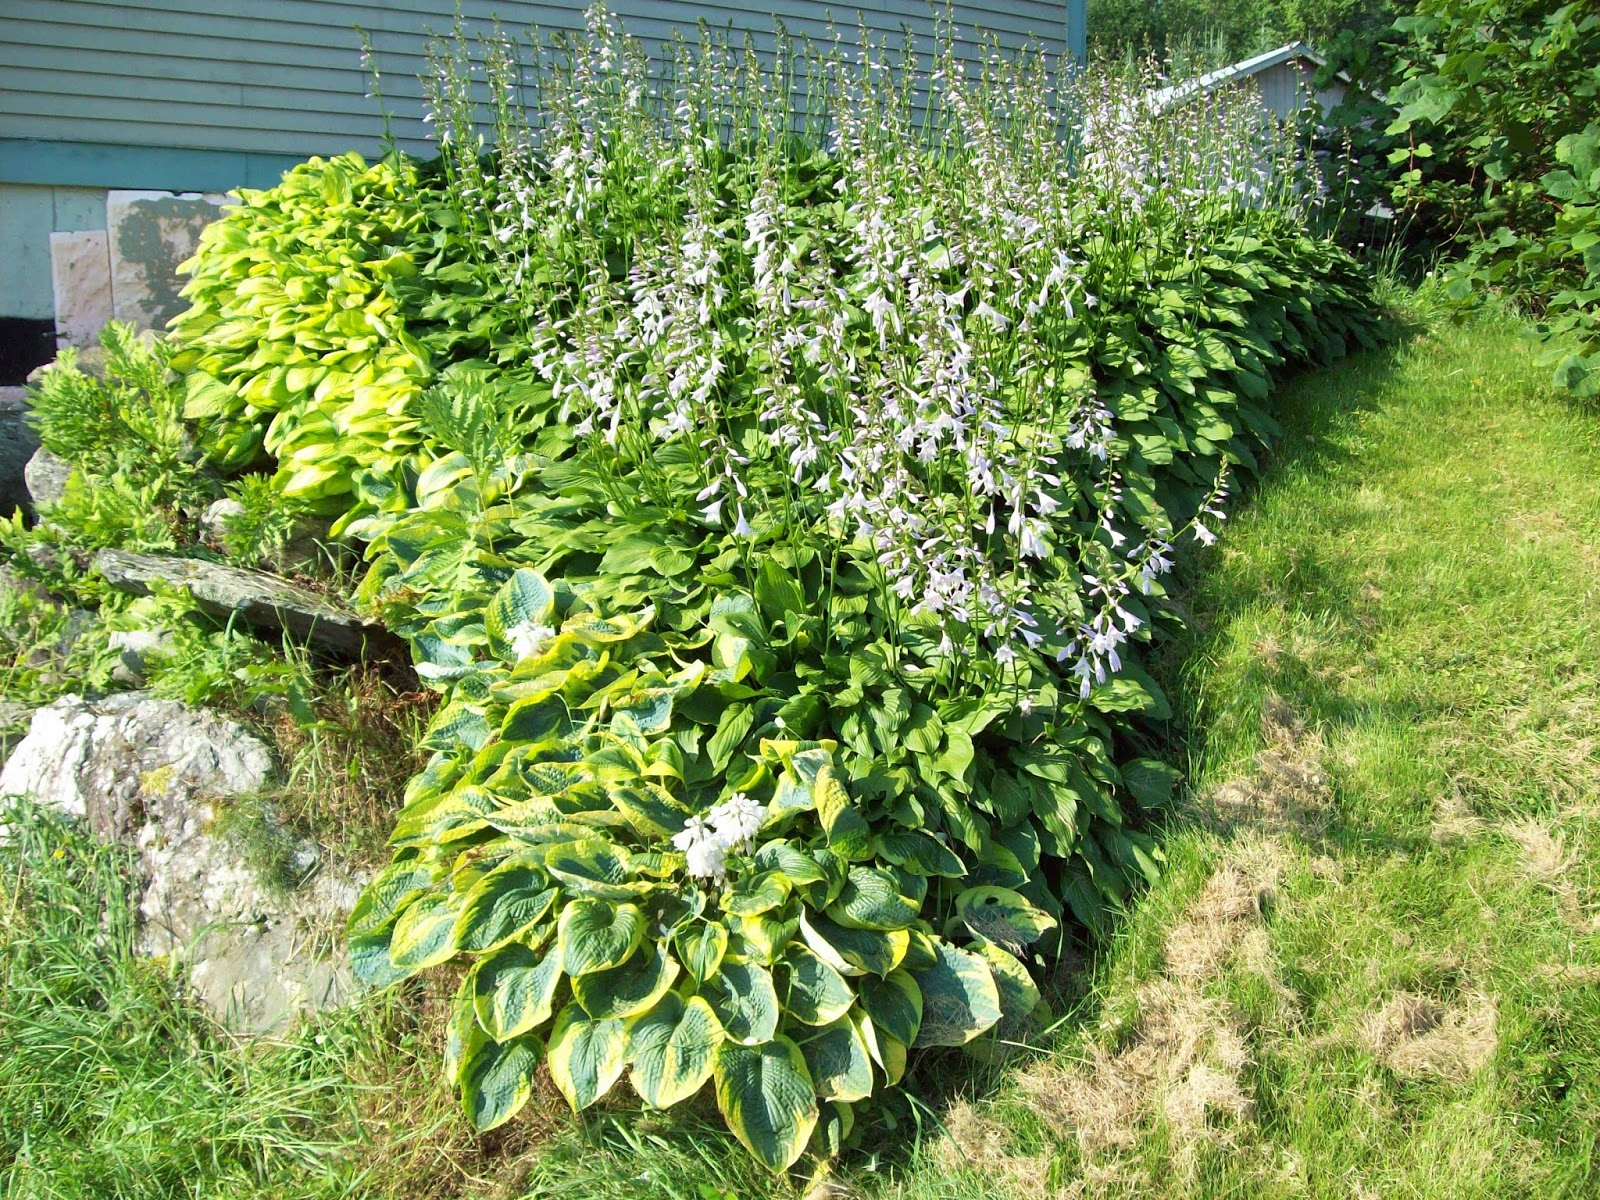 How to plant ground cover on steep bank - Hosta As Groundcover I Planted These Hosta On A Steep Bank At My House About 3 Years Ago Because It Was Hard To Mow I Planted The Hosta About 1 Apart And